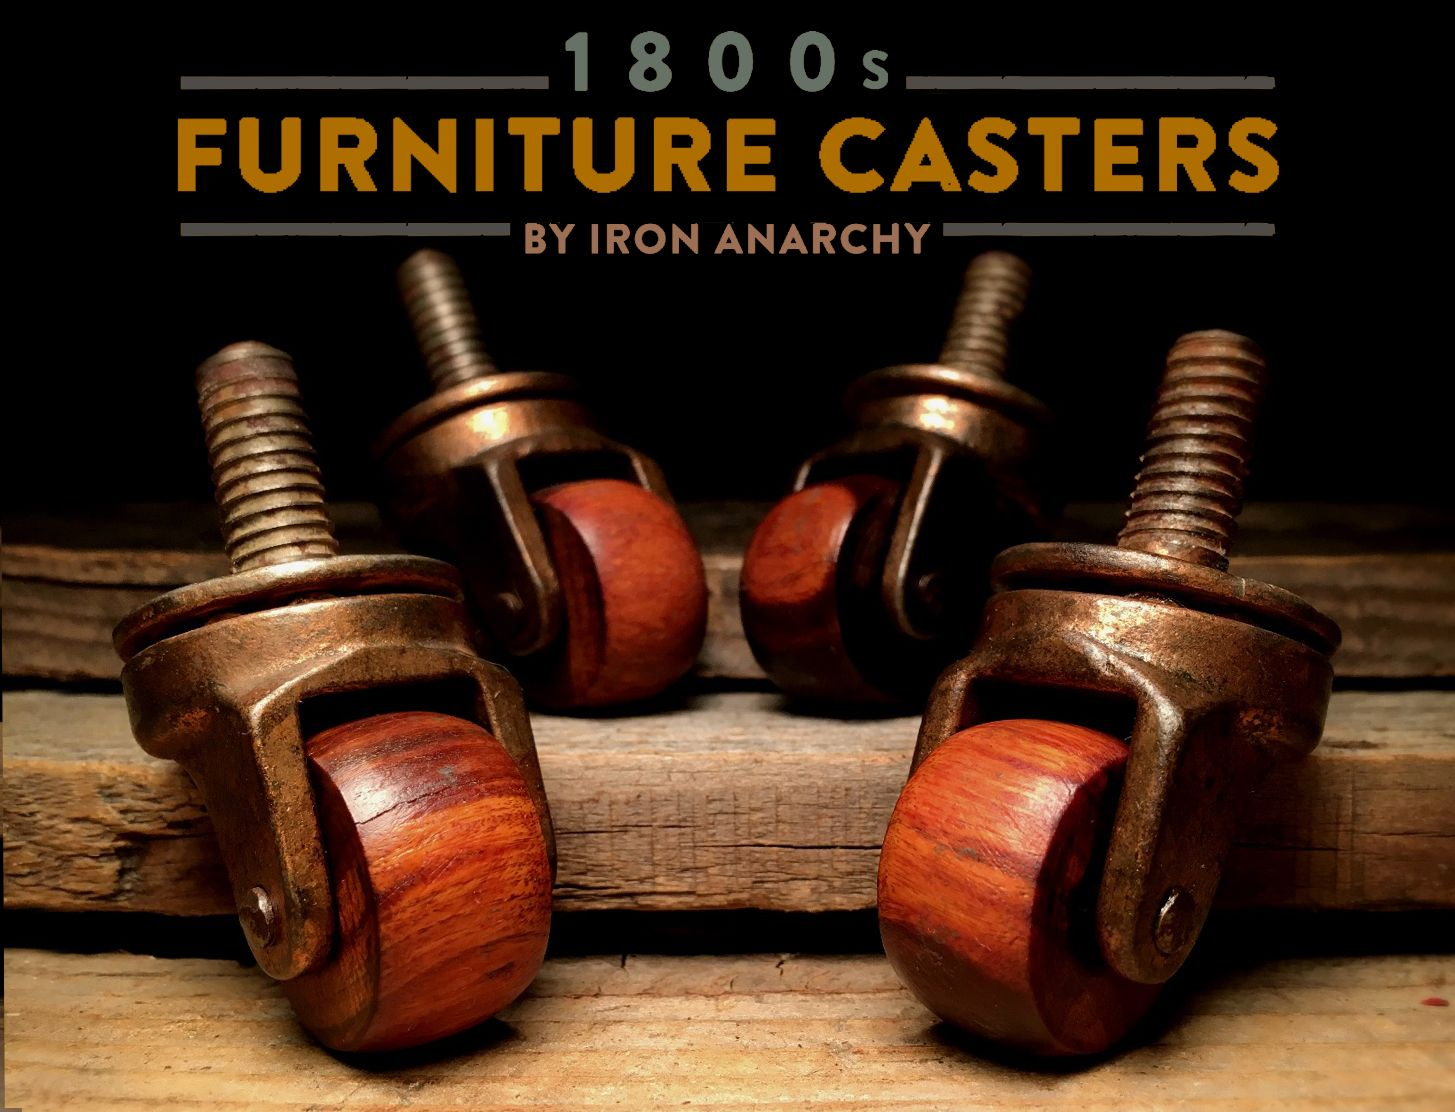 Antique table casters from IronAnarchy.com - Antique Furniture Casters